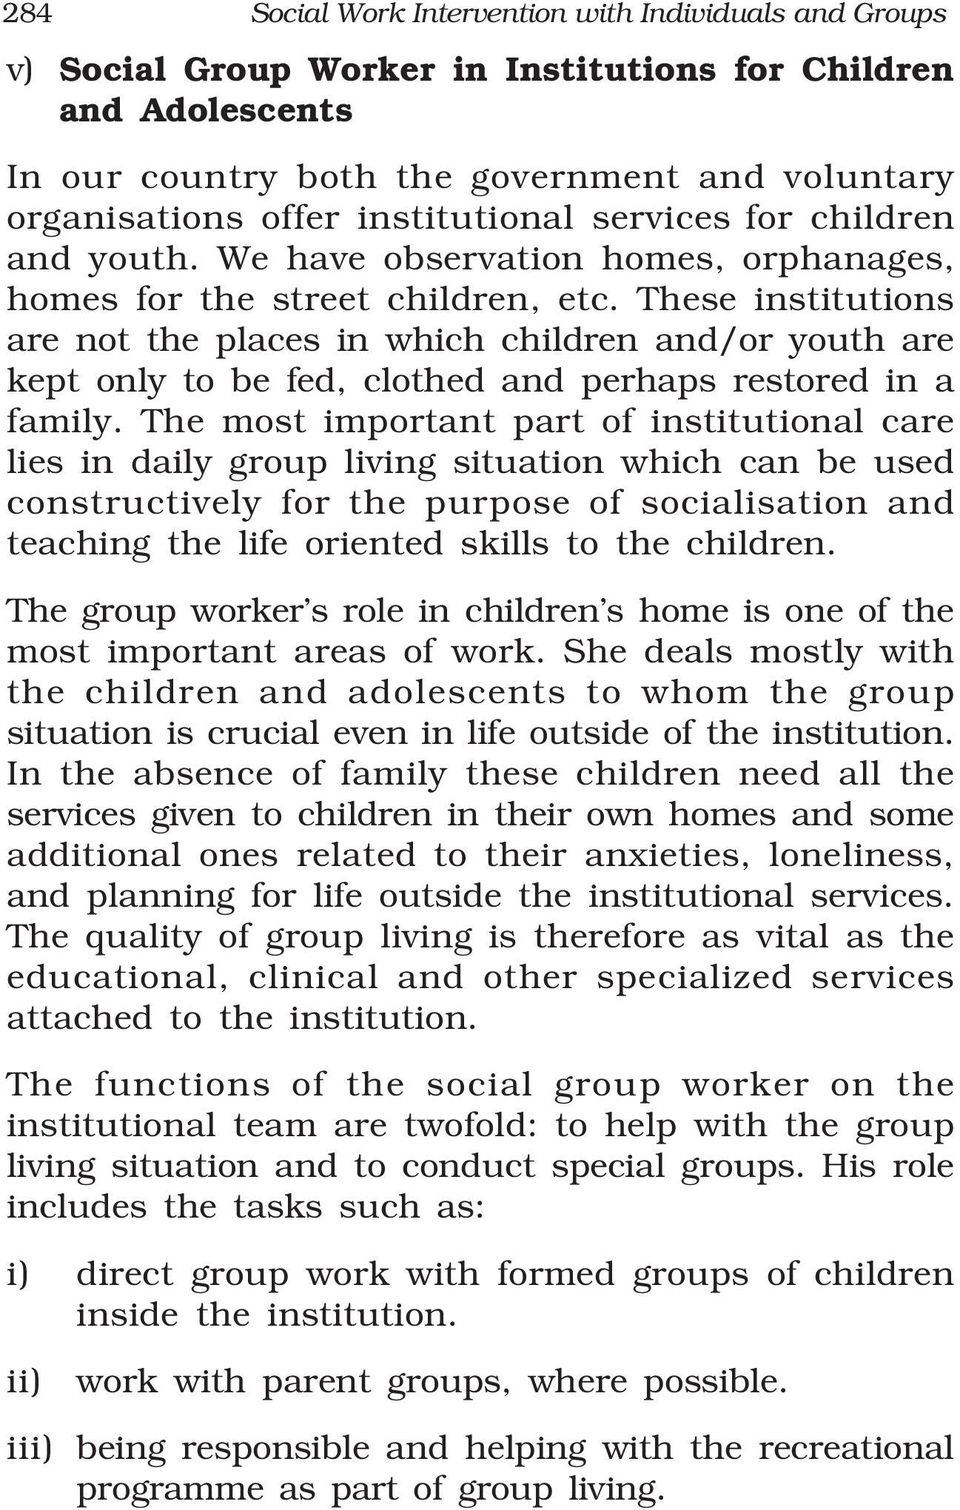 These institutions are not the places in which children and/or youth are kept only to be fed, clothed and perhaps restored in a family.